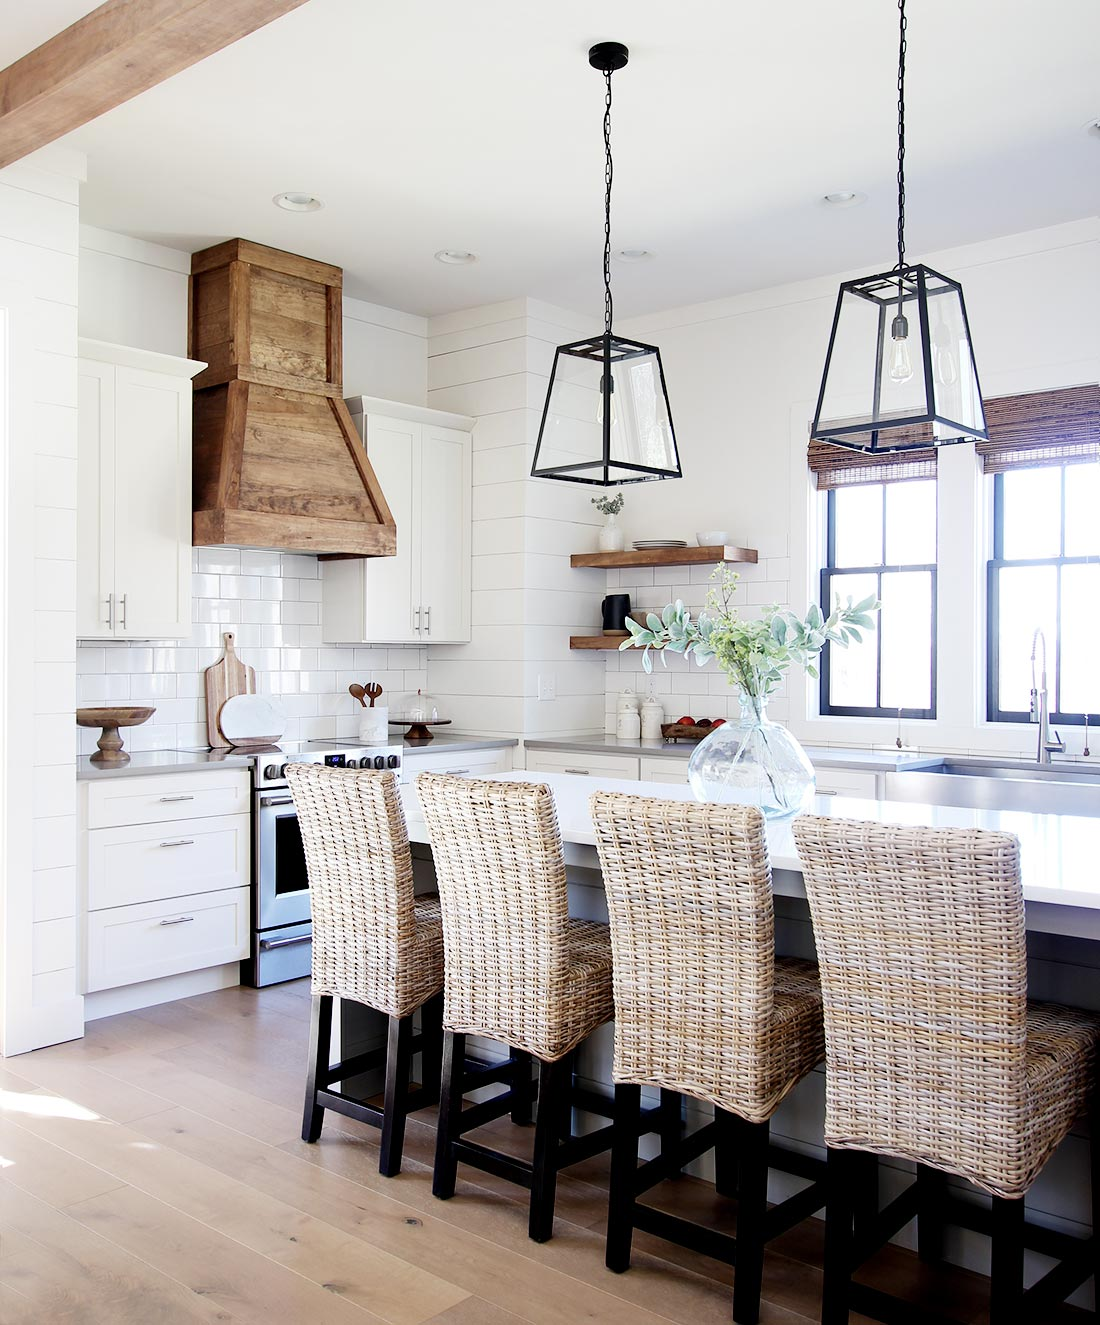 How to Build a Farmhouse Wood Range Hood - Plank and Pillow